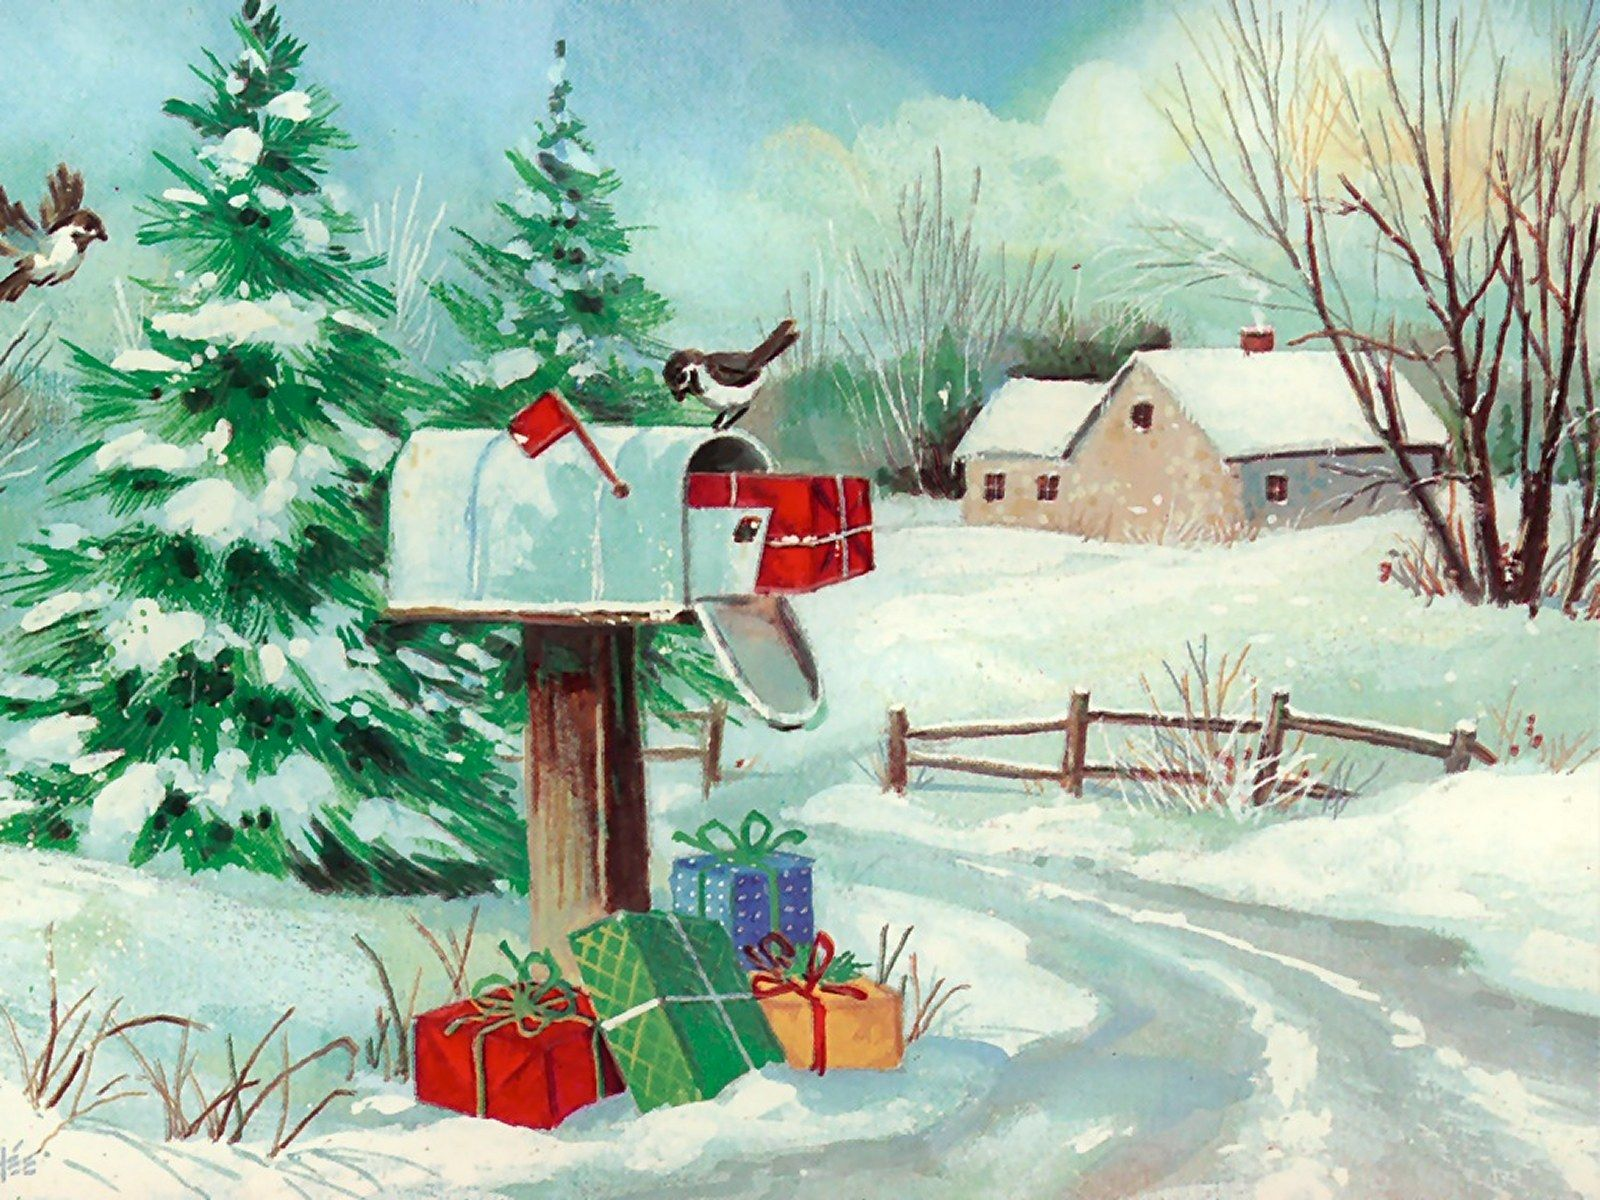 Christmas Art Wallpapers High Quality Download Free